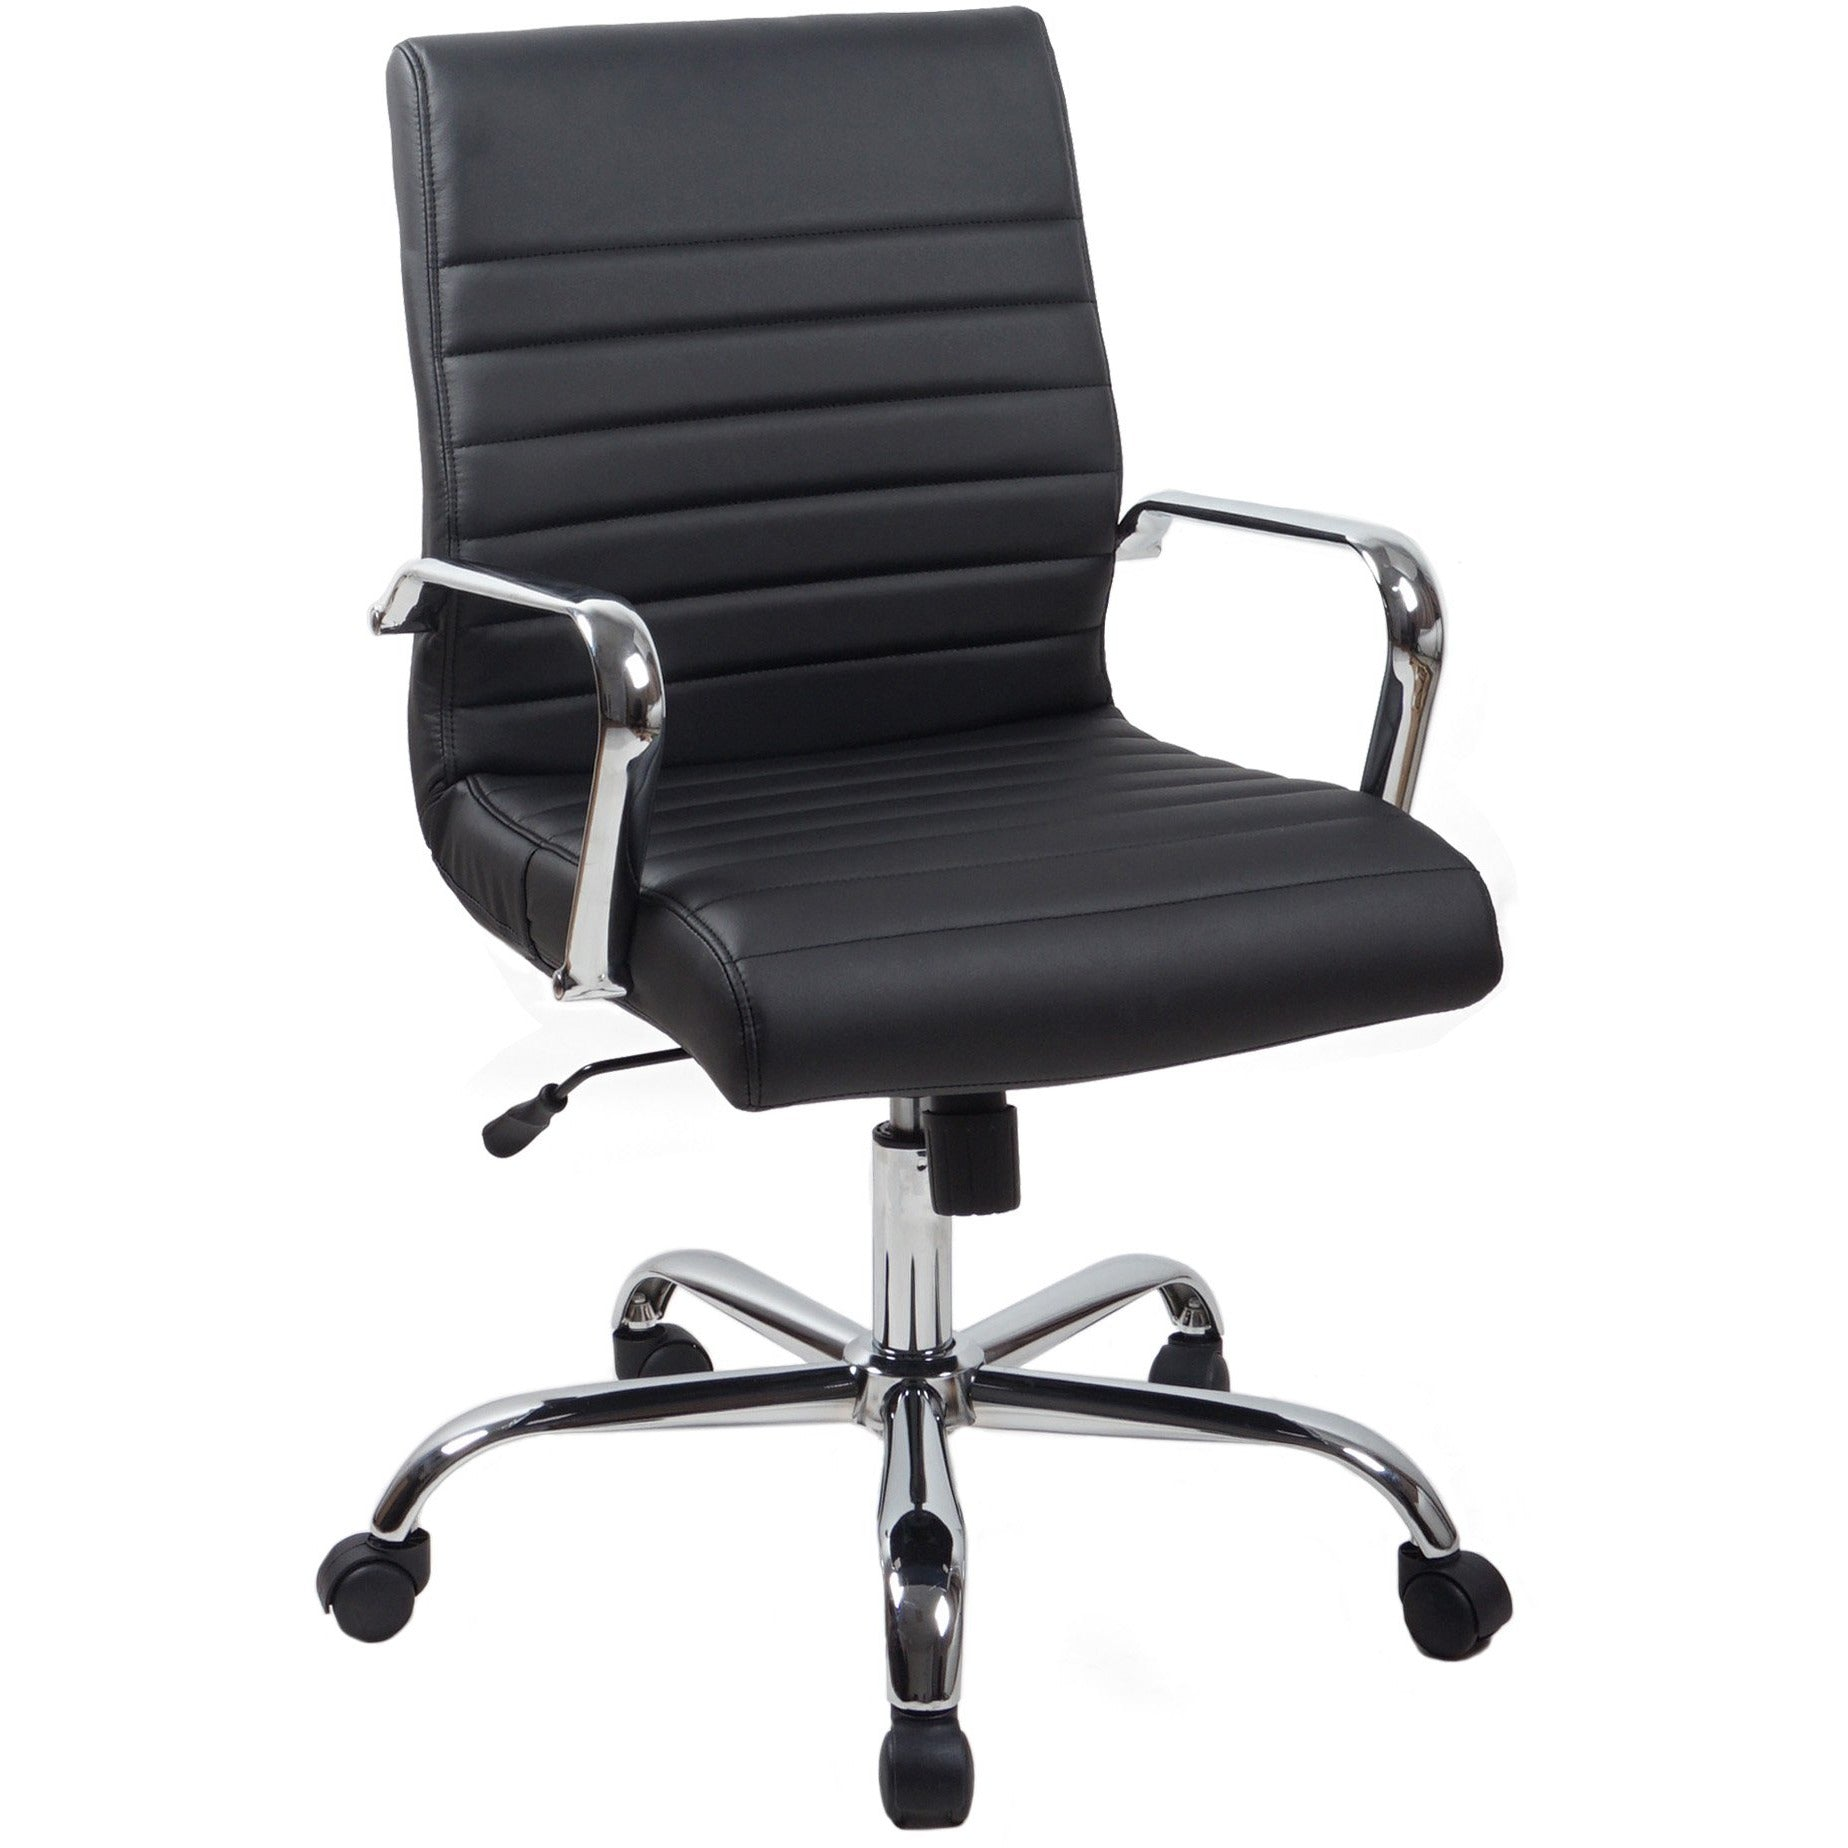 RealBiz II Modern Comfort Series Mid-Back LeatherPro Chair, Jet Black